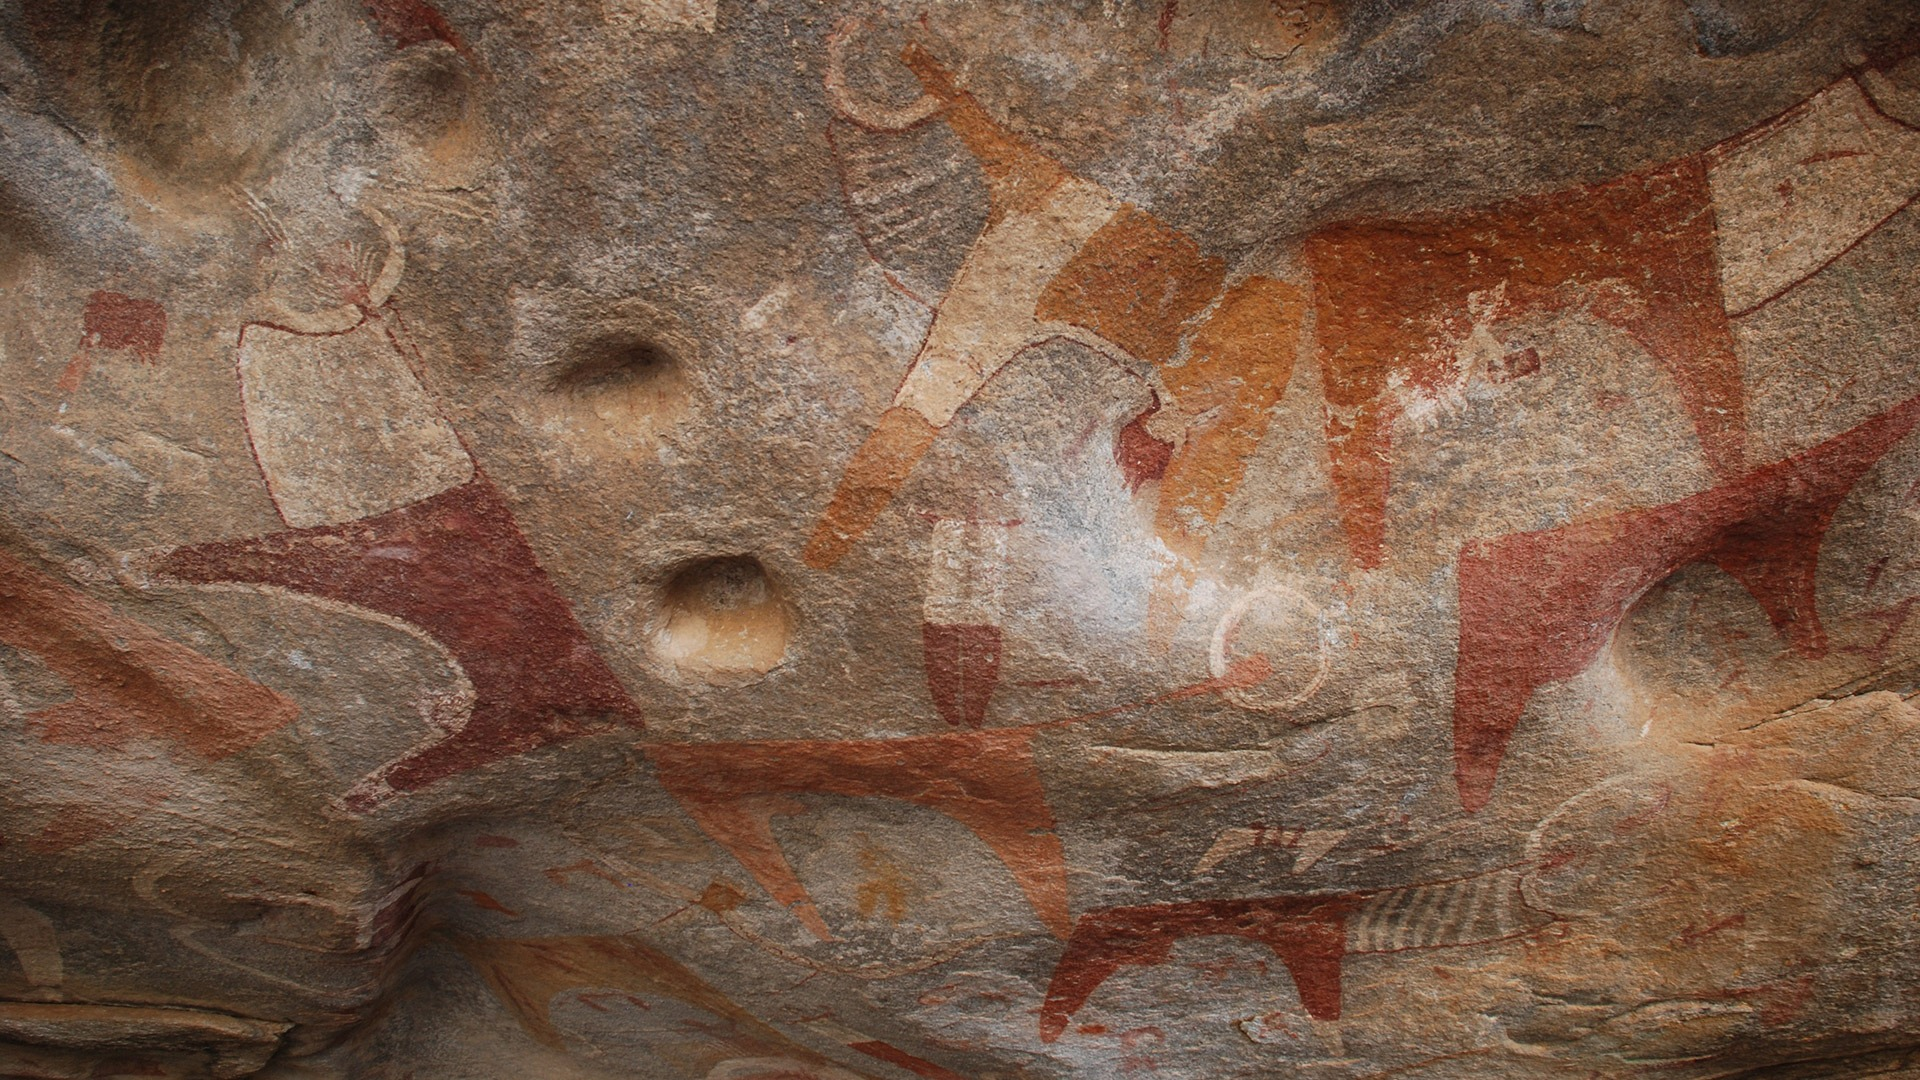 Rock art at the archaeological site of Laas Geel, Somaliland